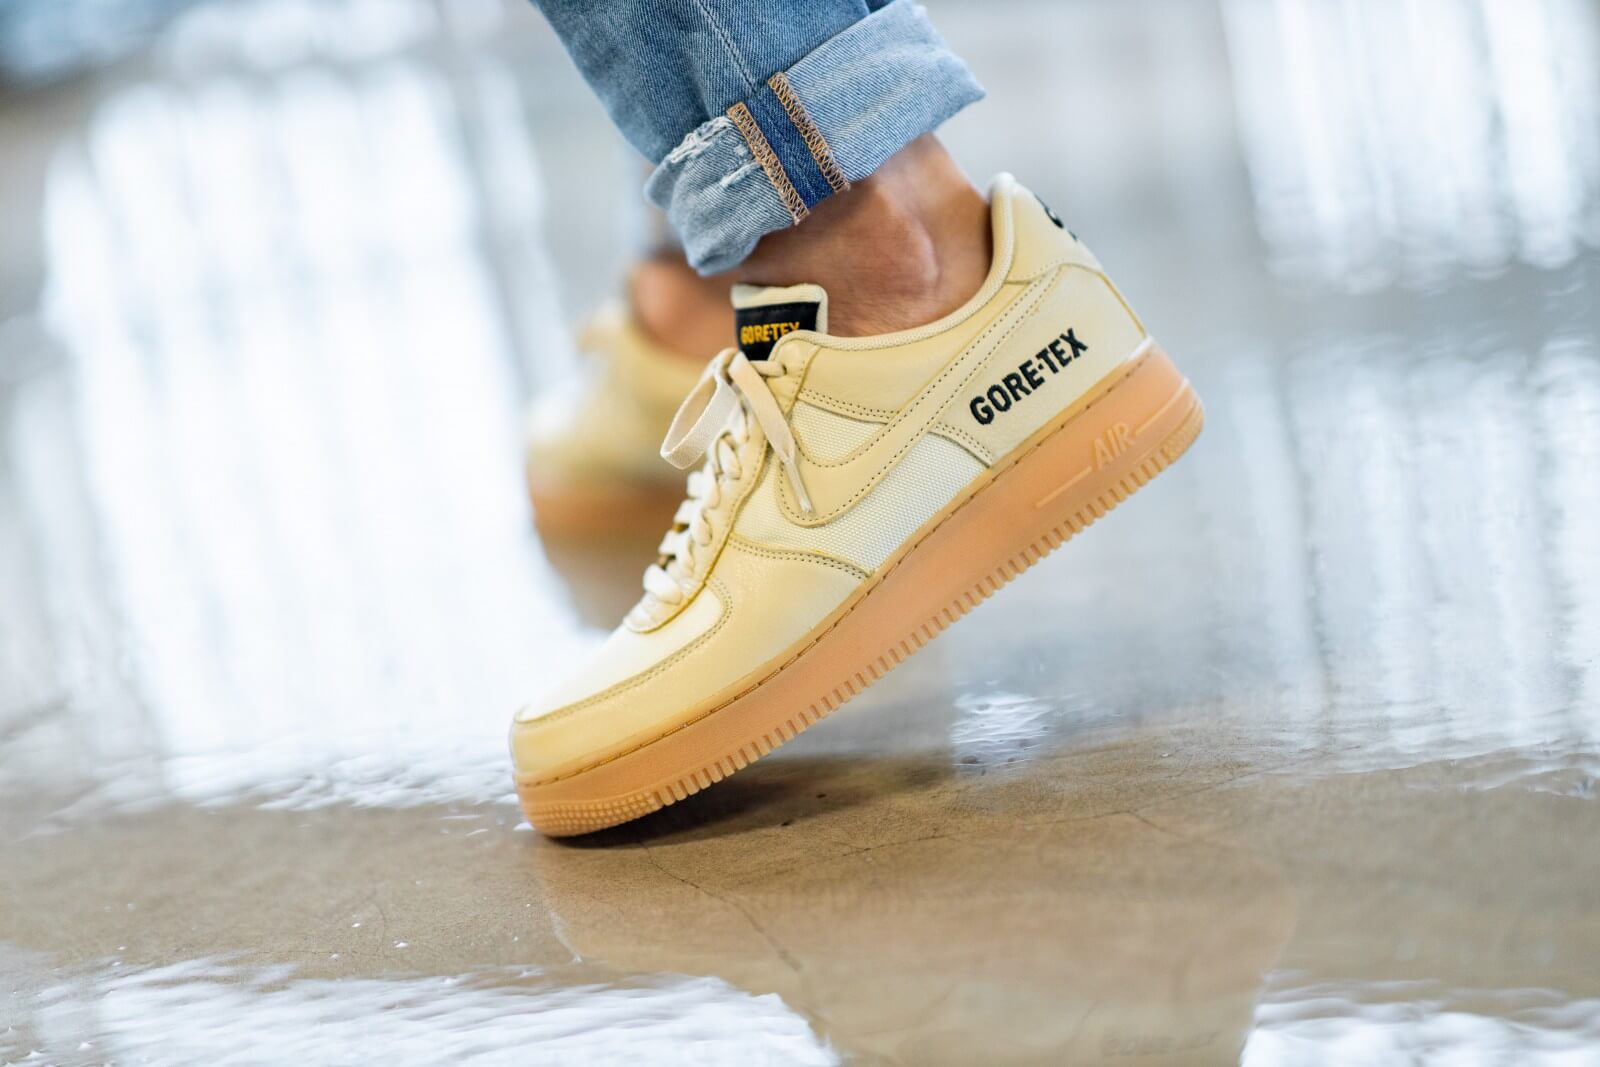 Beige Nike Air Force 1 maat 45.5 | Dames & heren